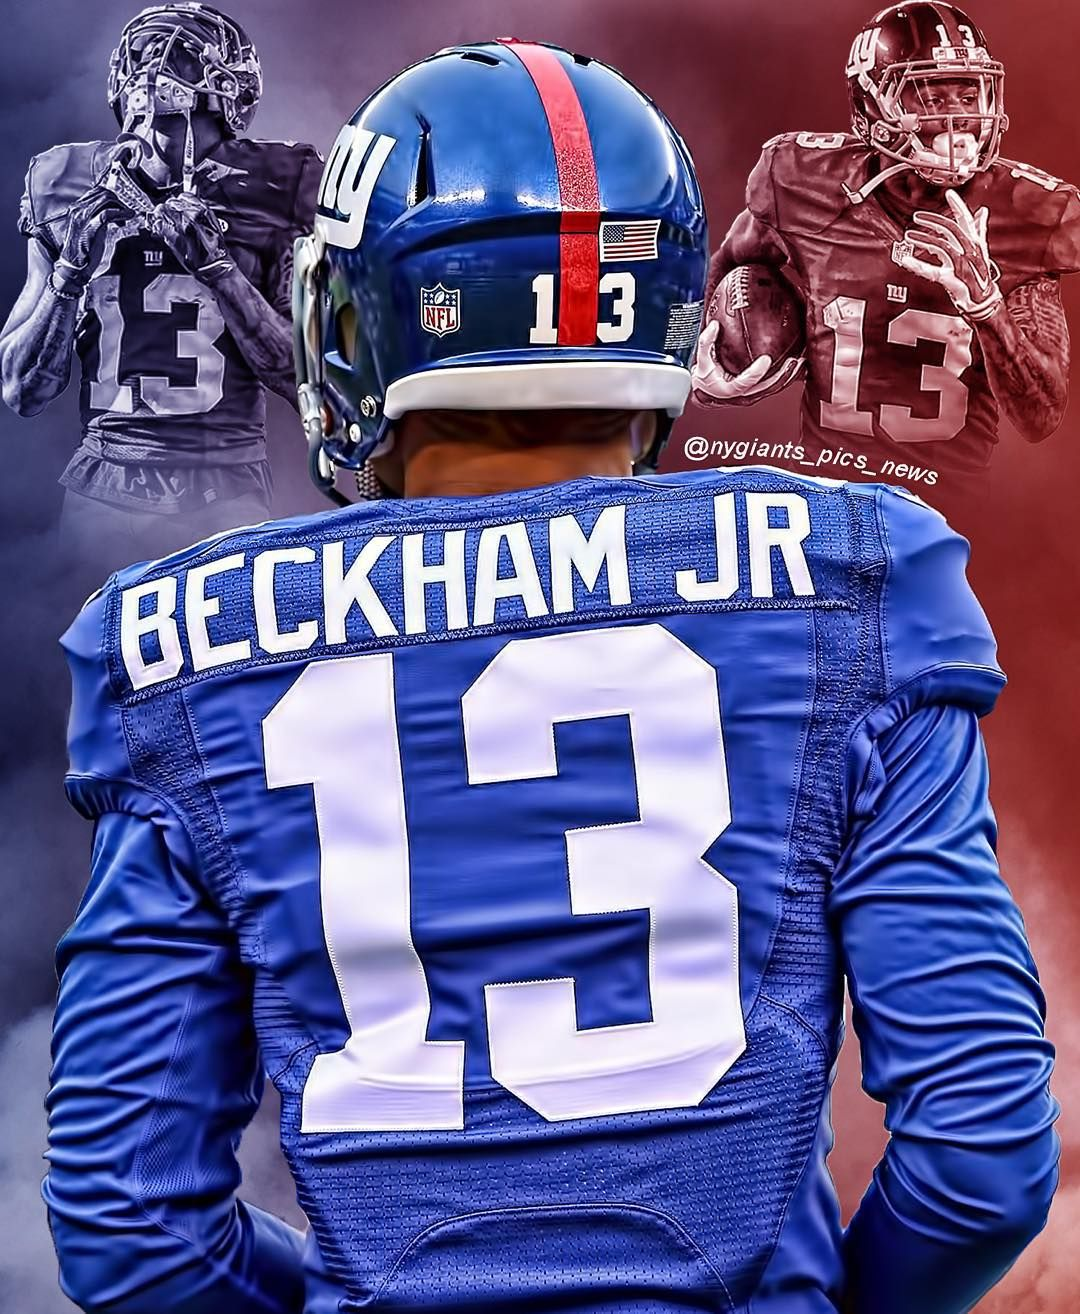 212 Likes 11 Comments Edits Big Blue News Nygiants Pics News On Instagram Odell Beckh Beckham Jr Odell Beckham Jr Giants Odell Beckham Jr Wallpapers